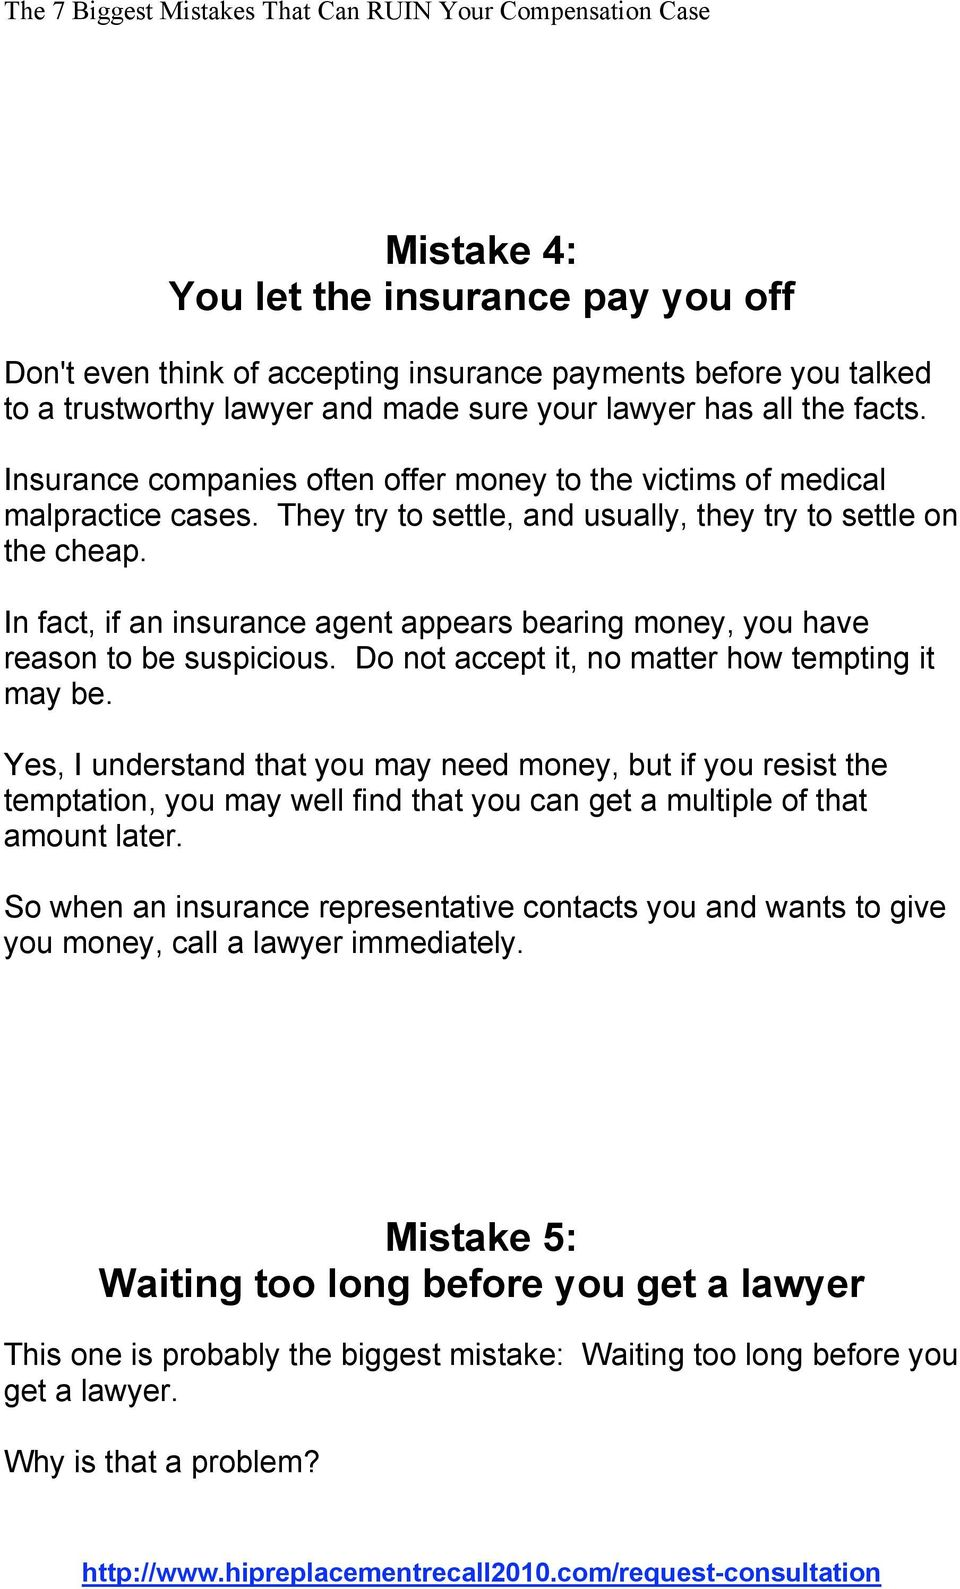 In fact, if an insurance agent appears bearing money, you have reason to be suspicious. Do not accept it, no matter how tempting it may be.